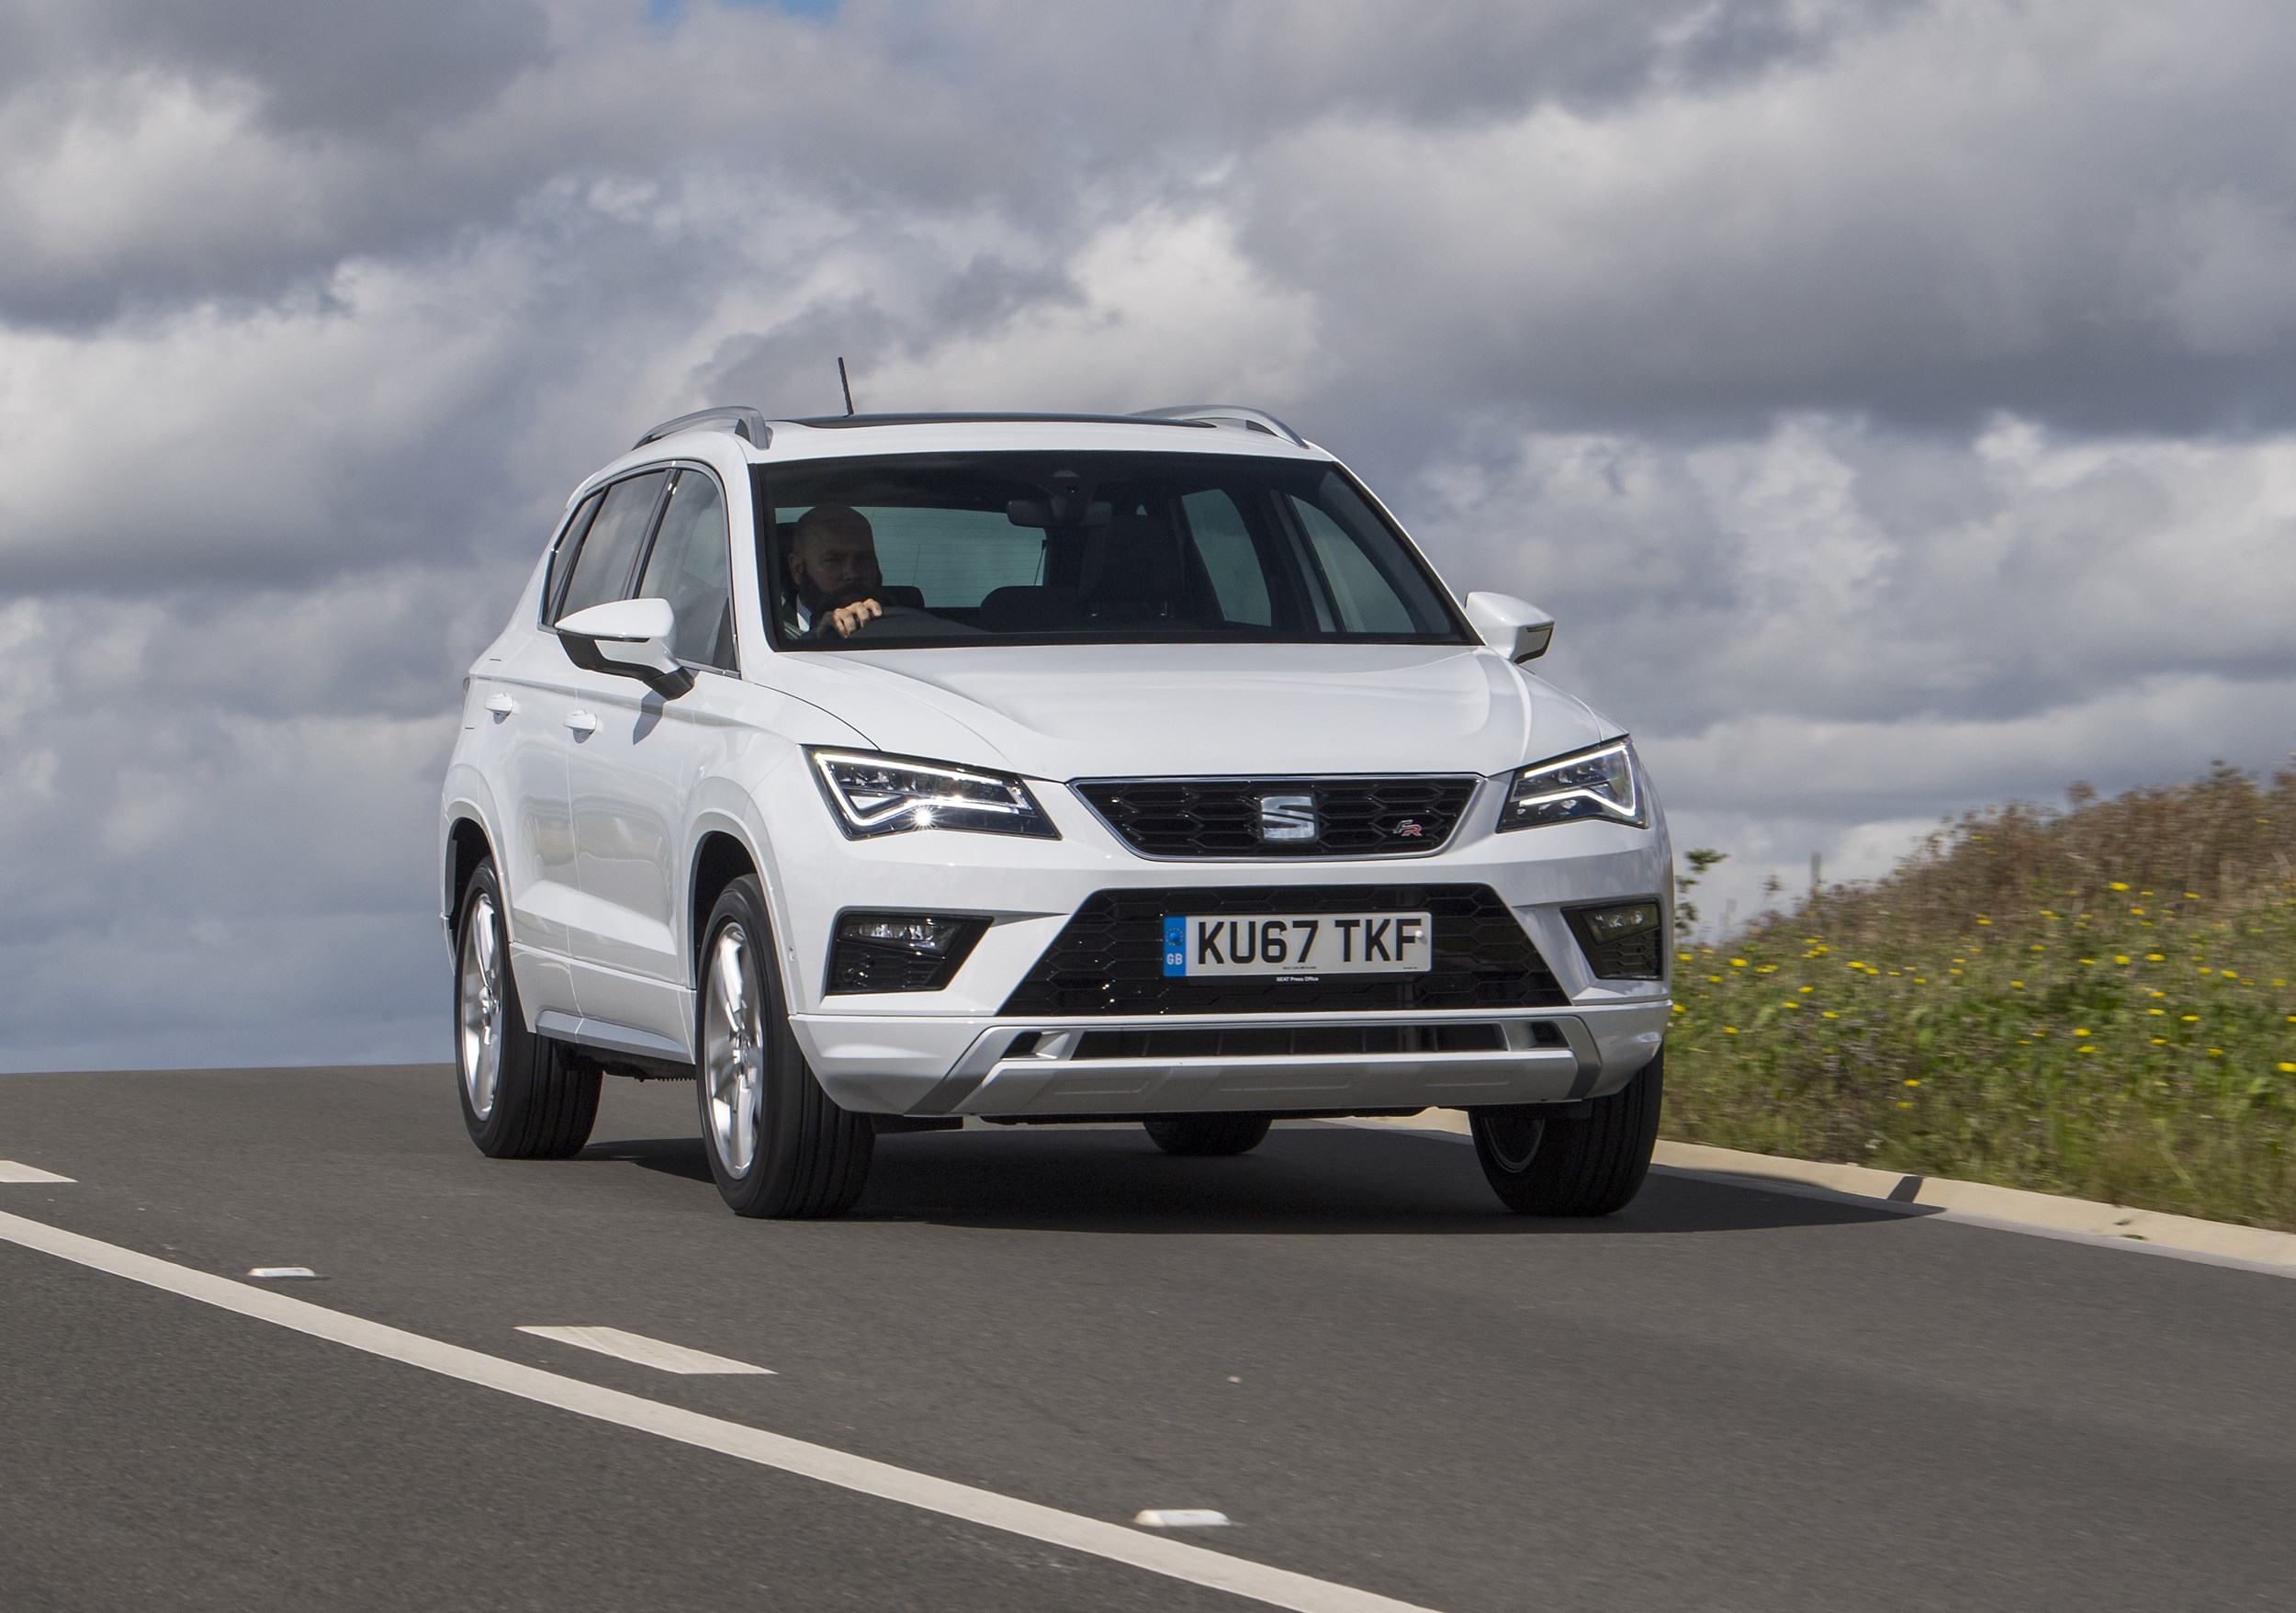 seat ateca fr road test shows 1 4 tsi petrol engine is credible diesel alternative company car. Black Bedroom Furniture Sets. Home Design Ideas